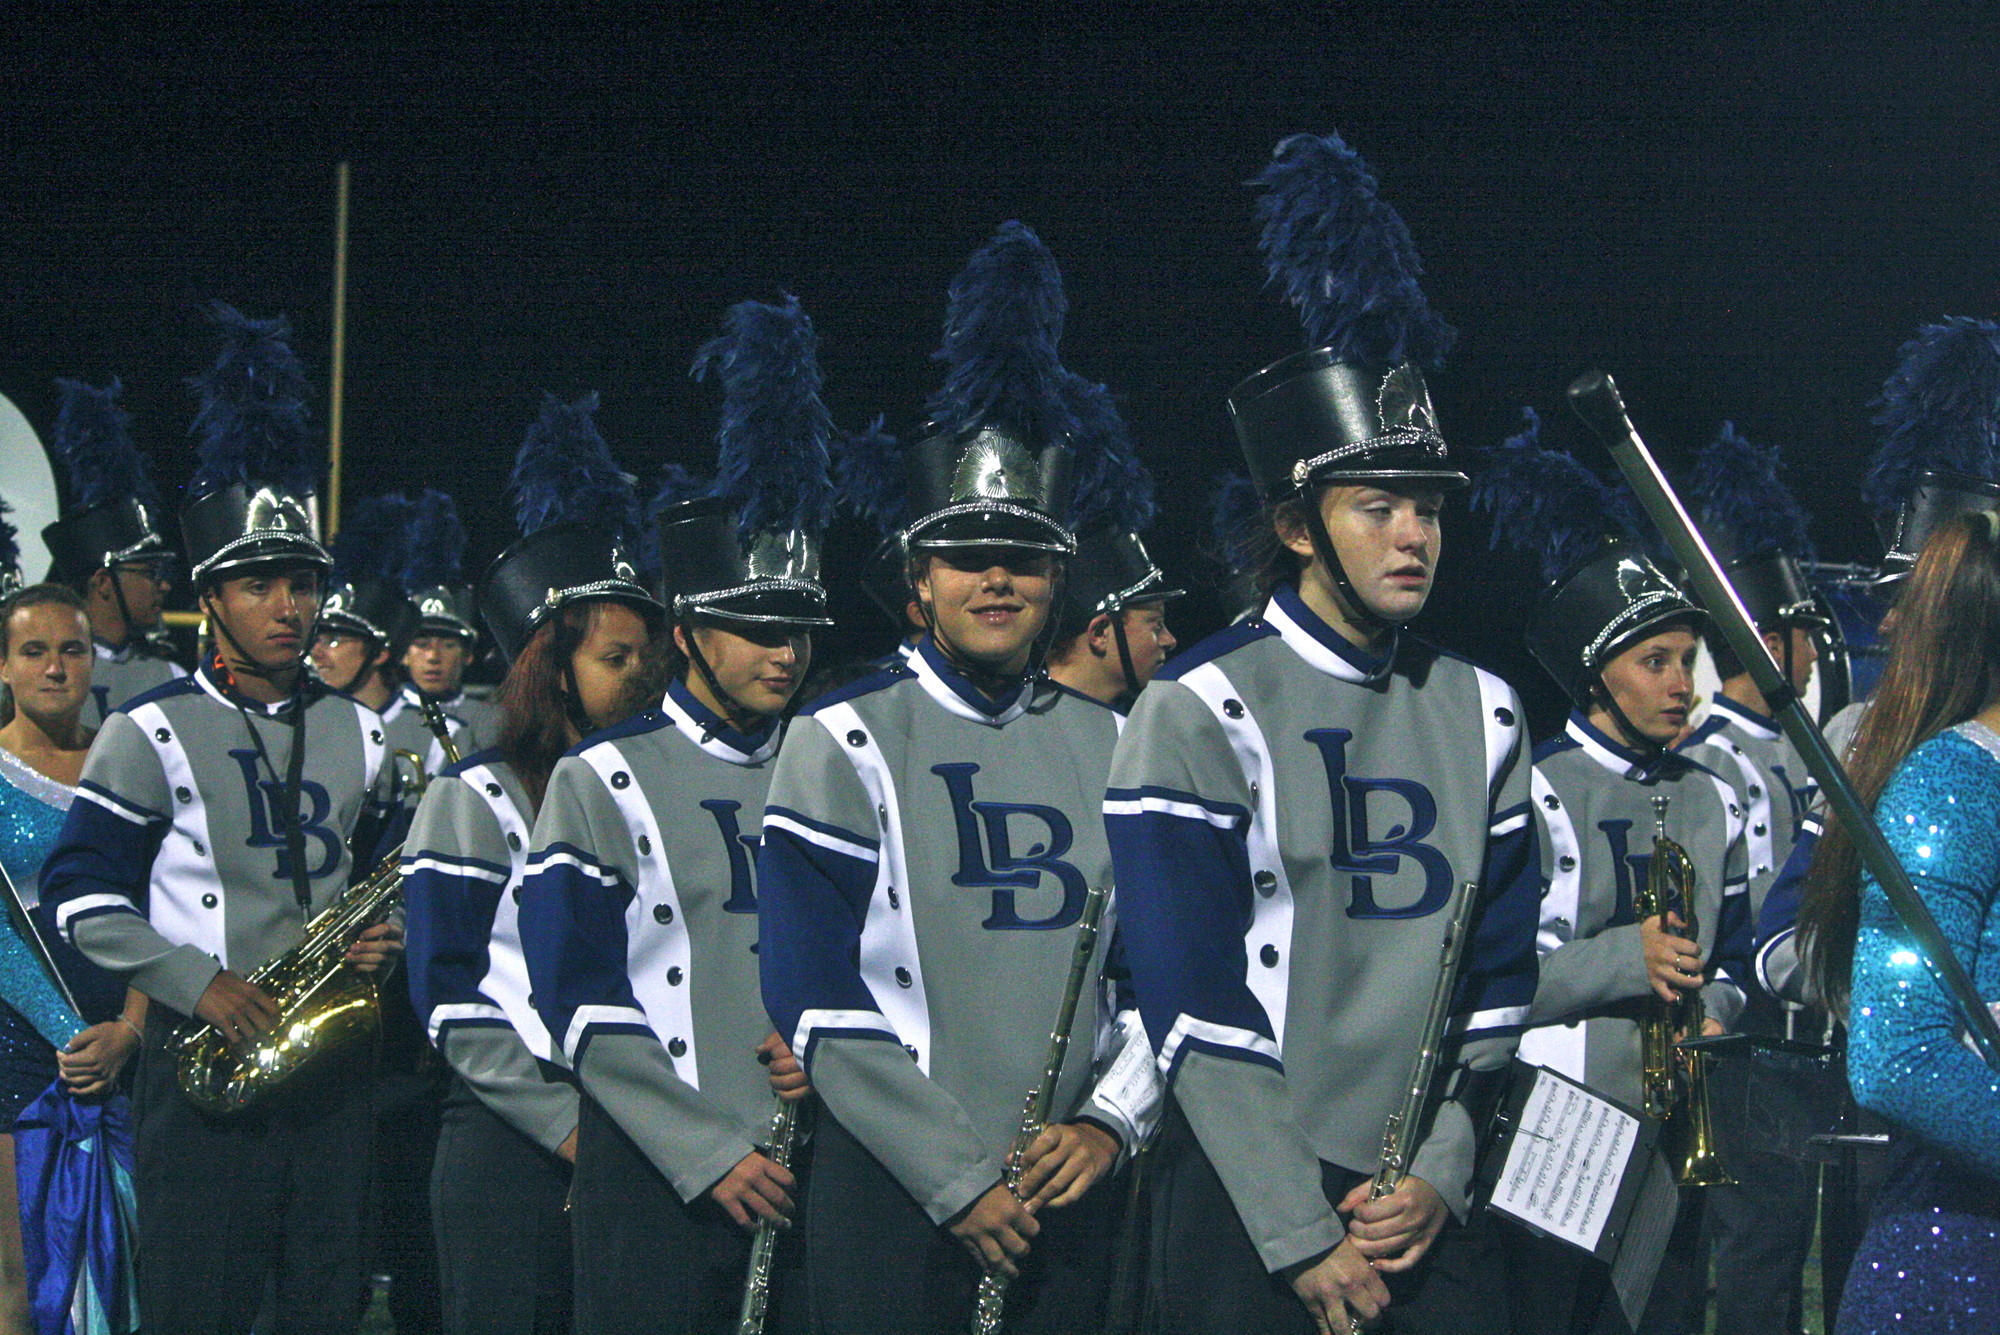 The marching band looked sharp for their halftime performance, titled